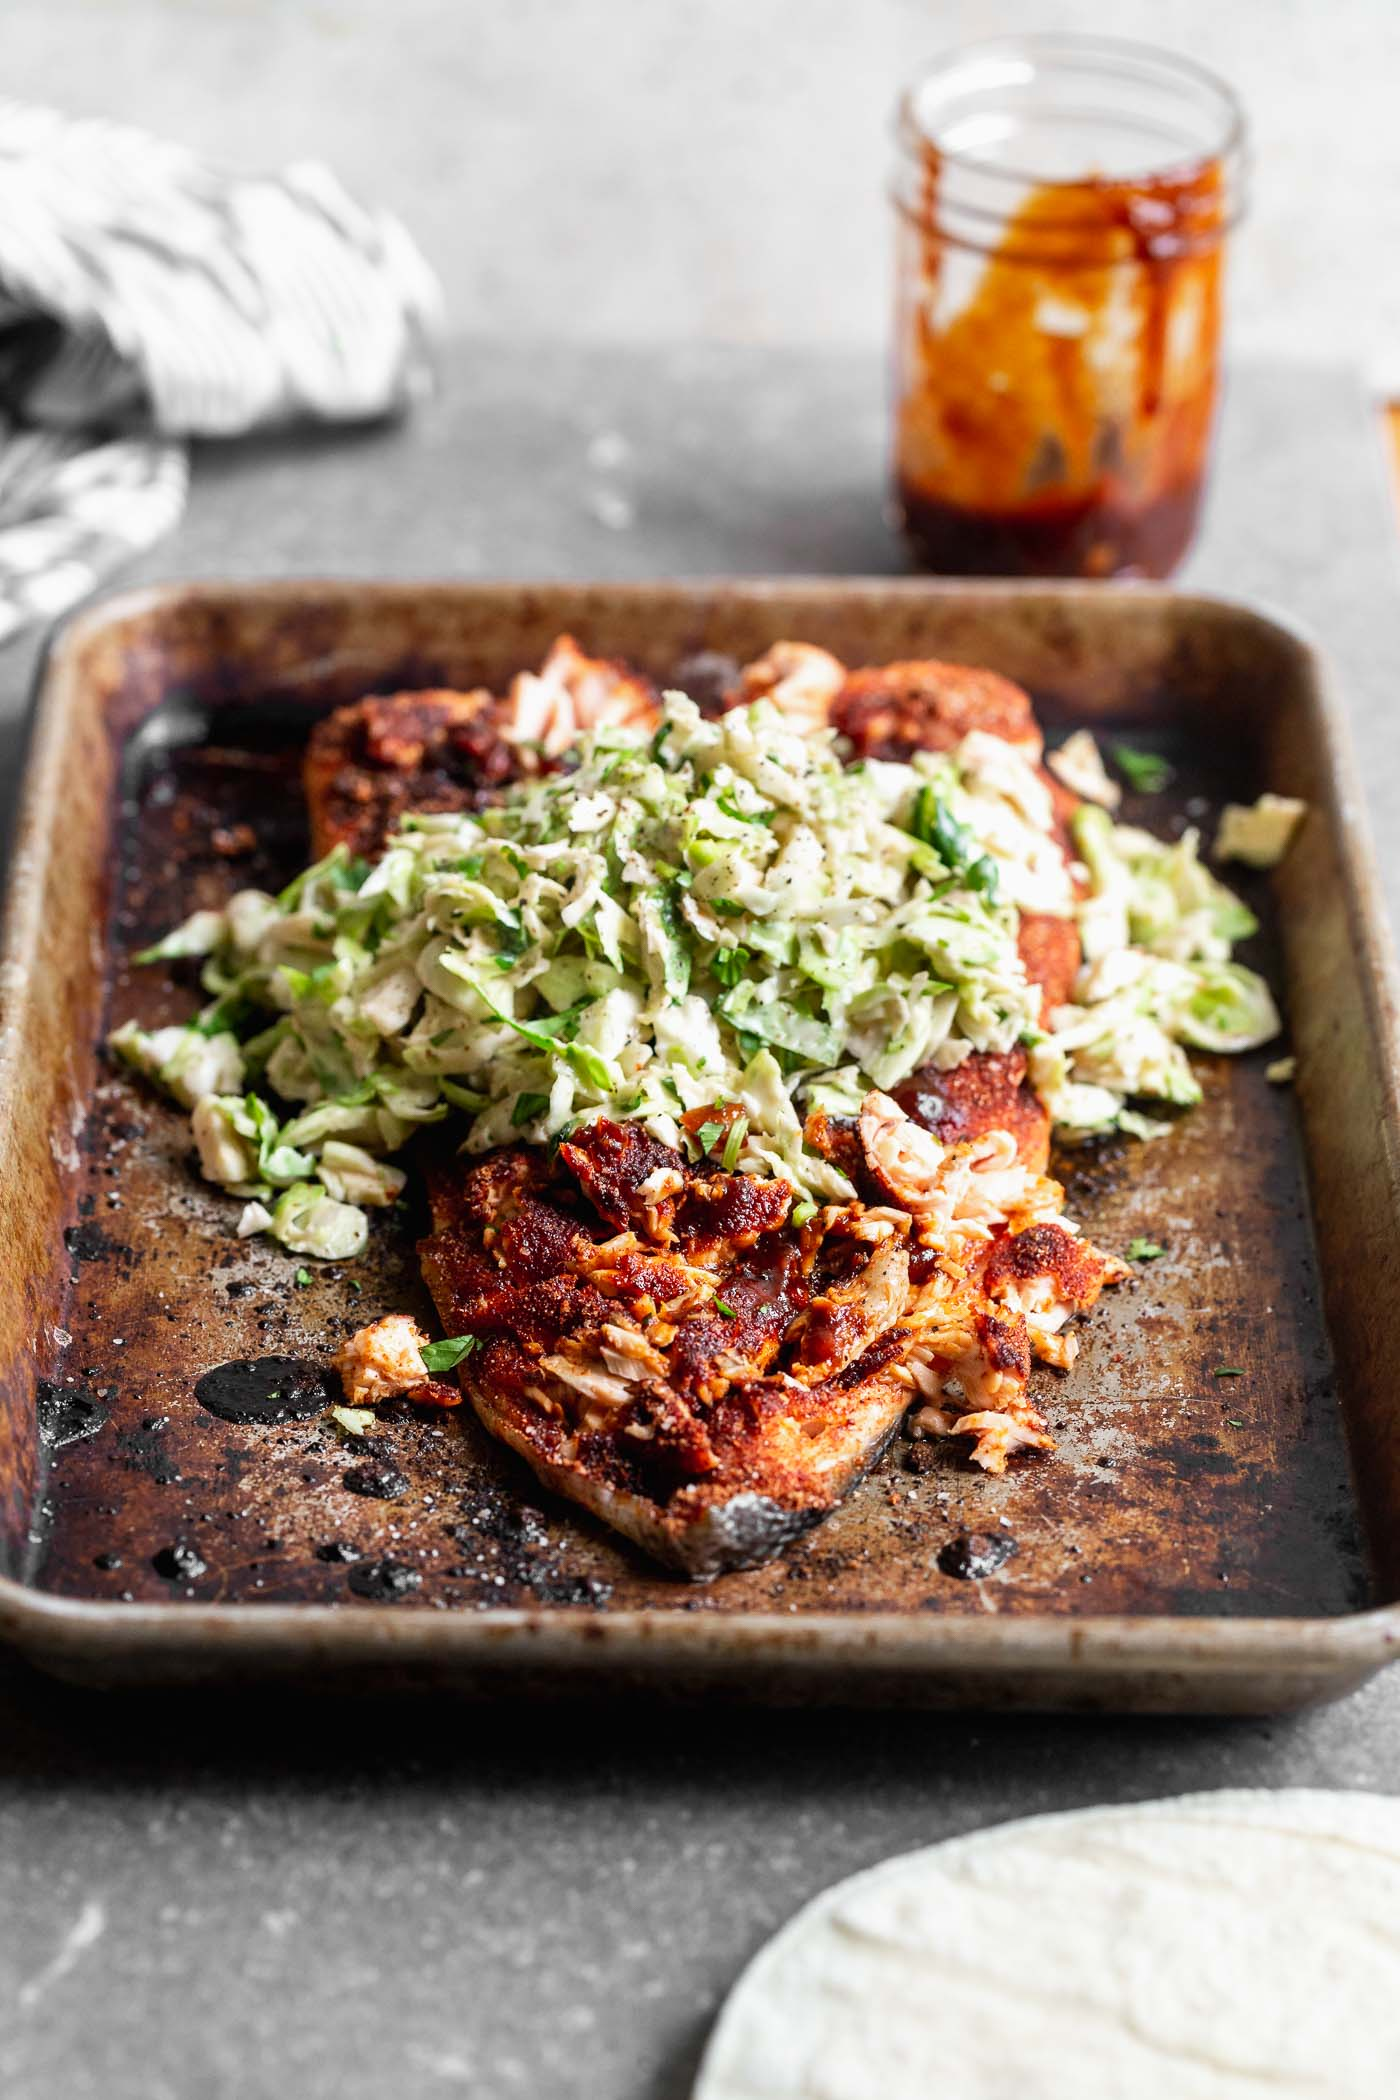 This Baked BBQ Salmon with Brussels Sprout Slaw is one of our favorite ways to serve salmon! We press a sweet and spicy dry rub on the surface of the fish, bake until crispy on the outside and buttery on the inside. We slather the salmon with homemade barbecue sauce and top with a cool, crisp Brussels sprout slaw. Serve as is, or nestle into tortillas for the perfect taco.